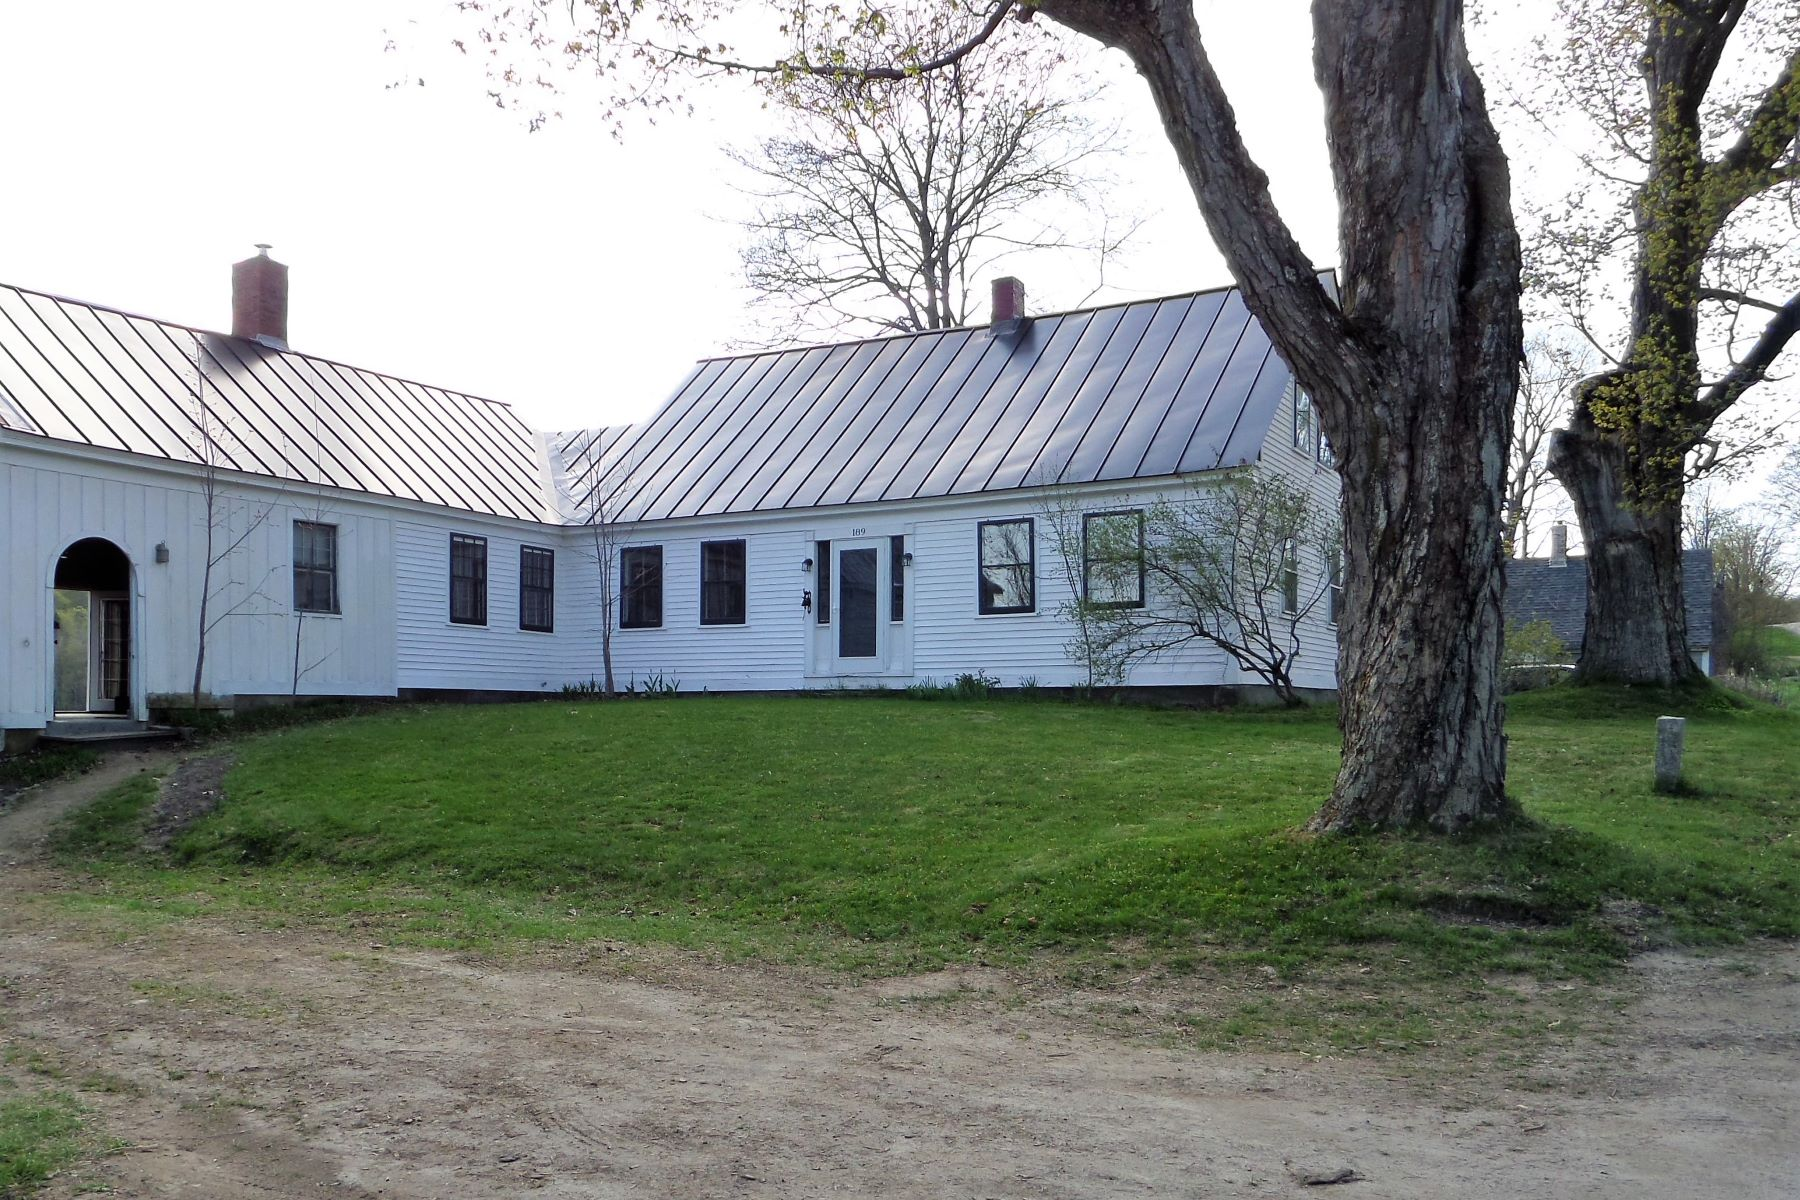 Single Family Home for Sale at Three Bedroom Antique Cape in West Newbury 189 Tucker Mountain Rd Newbury, Vermont 05051 United States